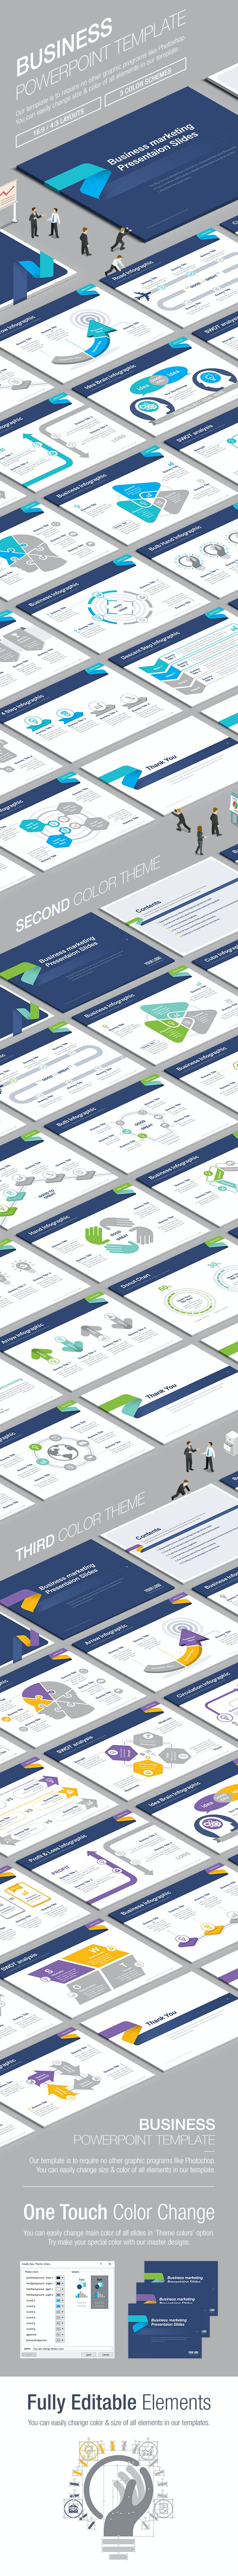 Business Powerpoint Template 006 - Business PowerPoint Templates